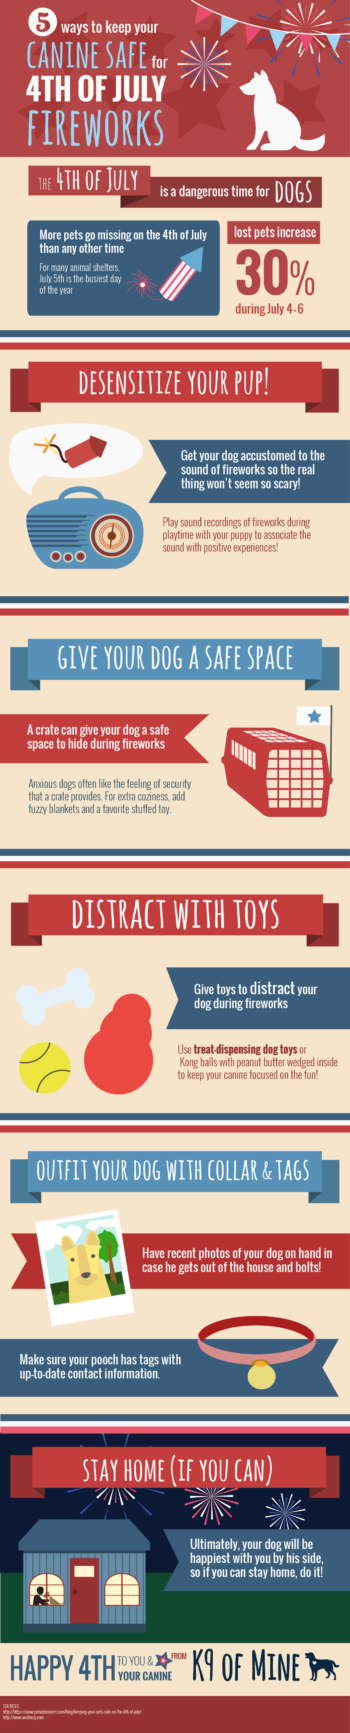 FitBark_k9ofMine_fourthsafety-350x1733 | 4th of July Dog Safety Tips